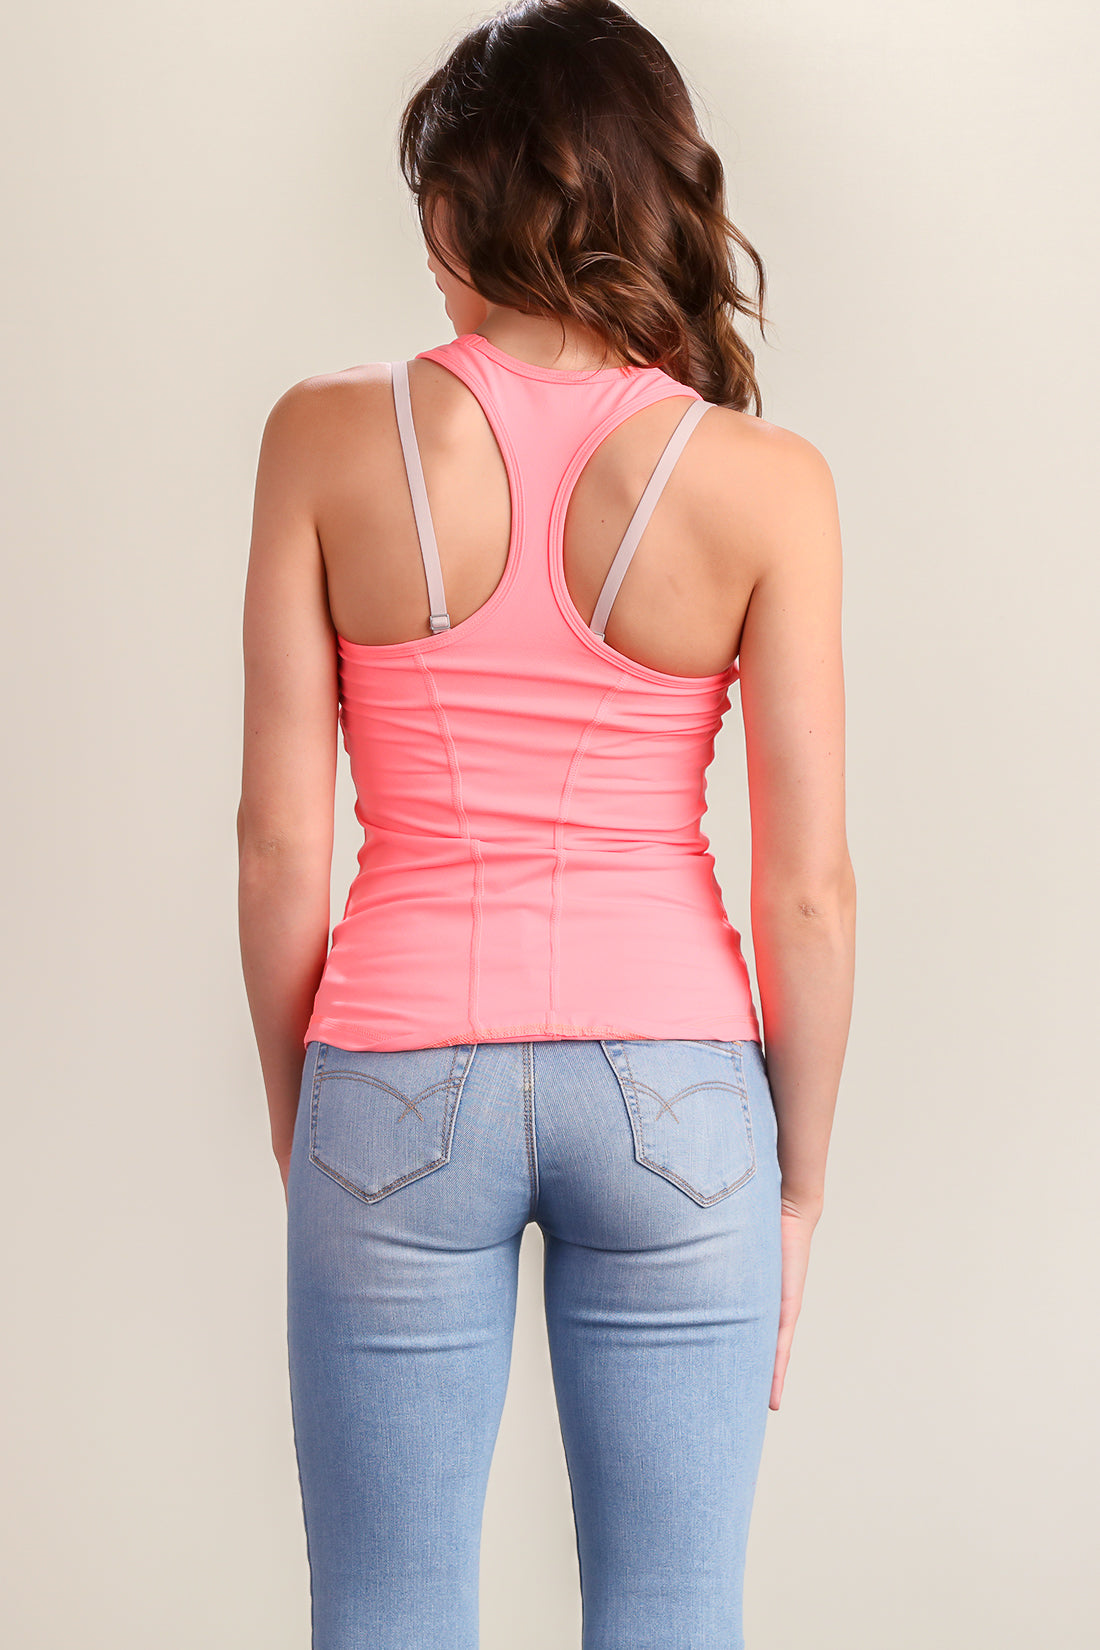 Pink Work Out Top